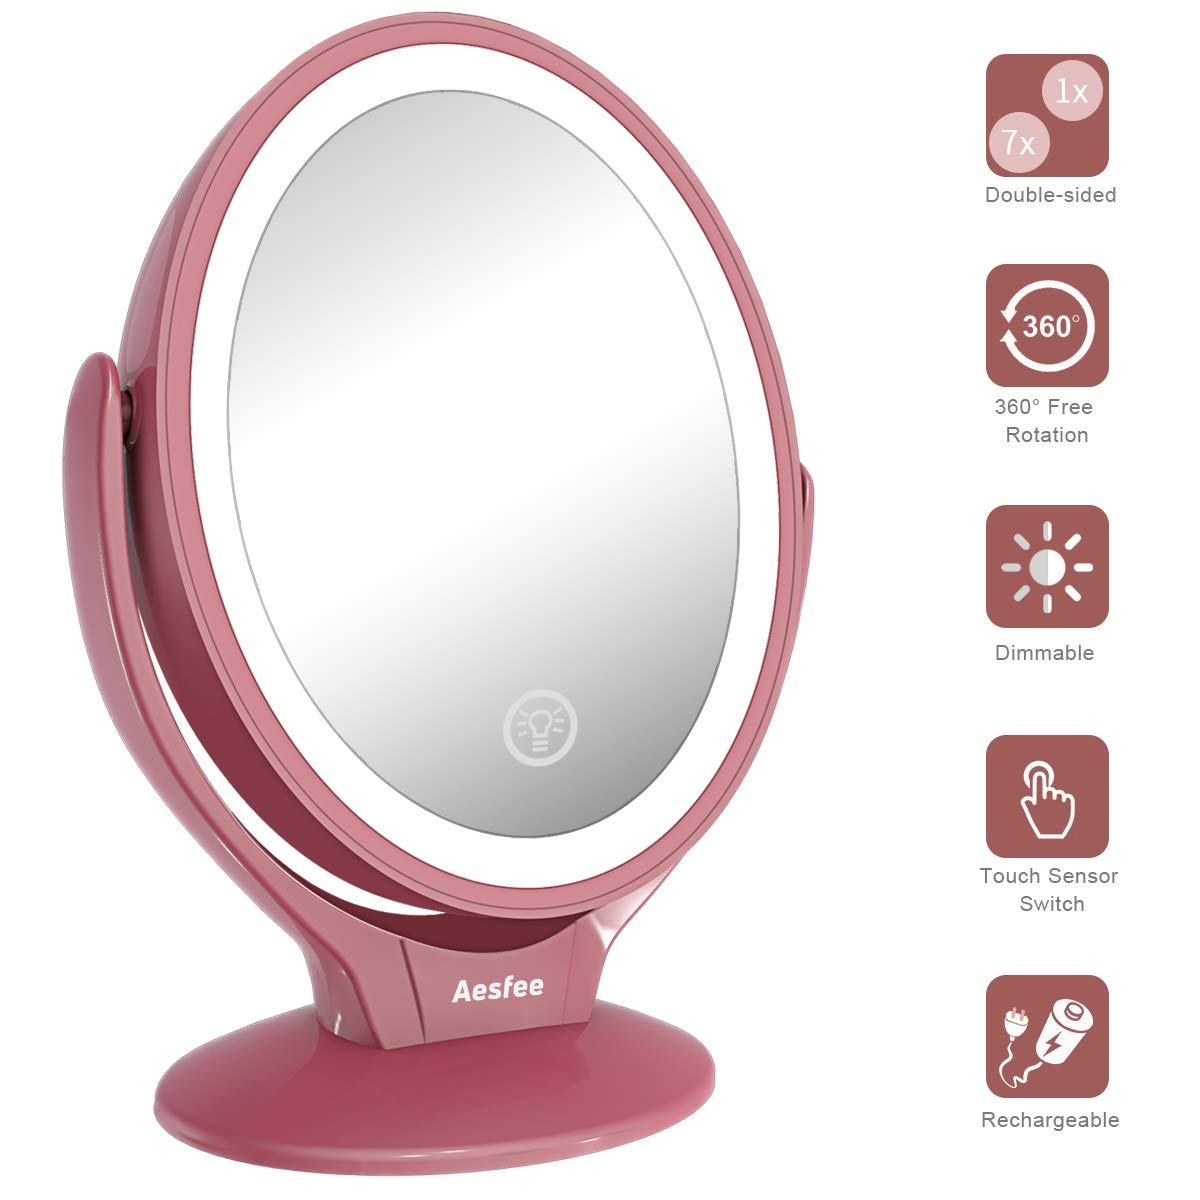 LED Lighted Makeup Vanity Mirror Rechargeable,1x/7x Magnification Double Sided 360 Degree Swivel Magnifying Mirror with Dimmable Touch Screen,Portable Tabletop Illuminated Cosmetic Mirrors (Rose Gold)